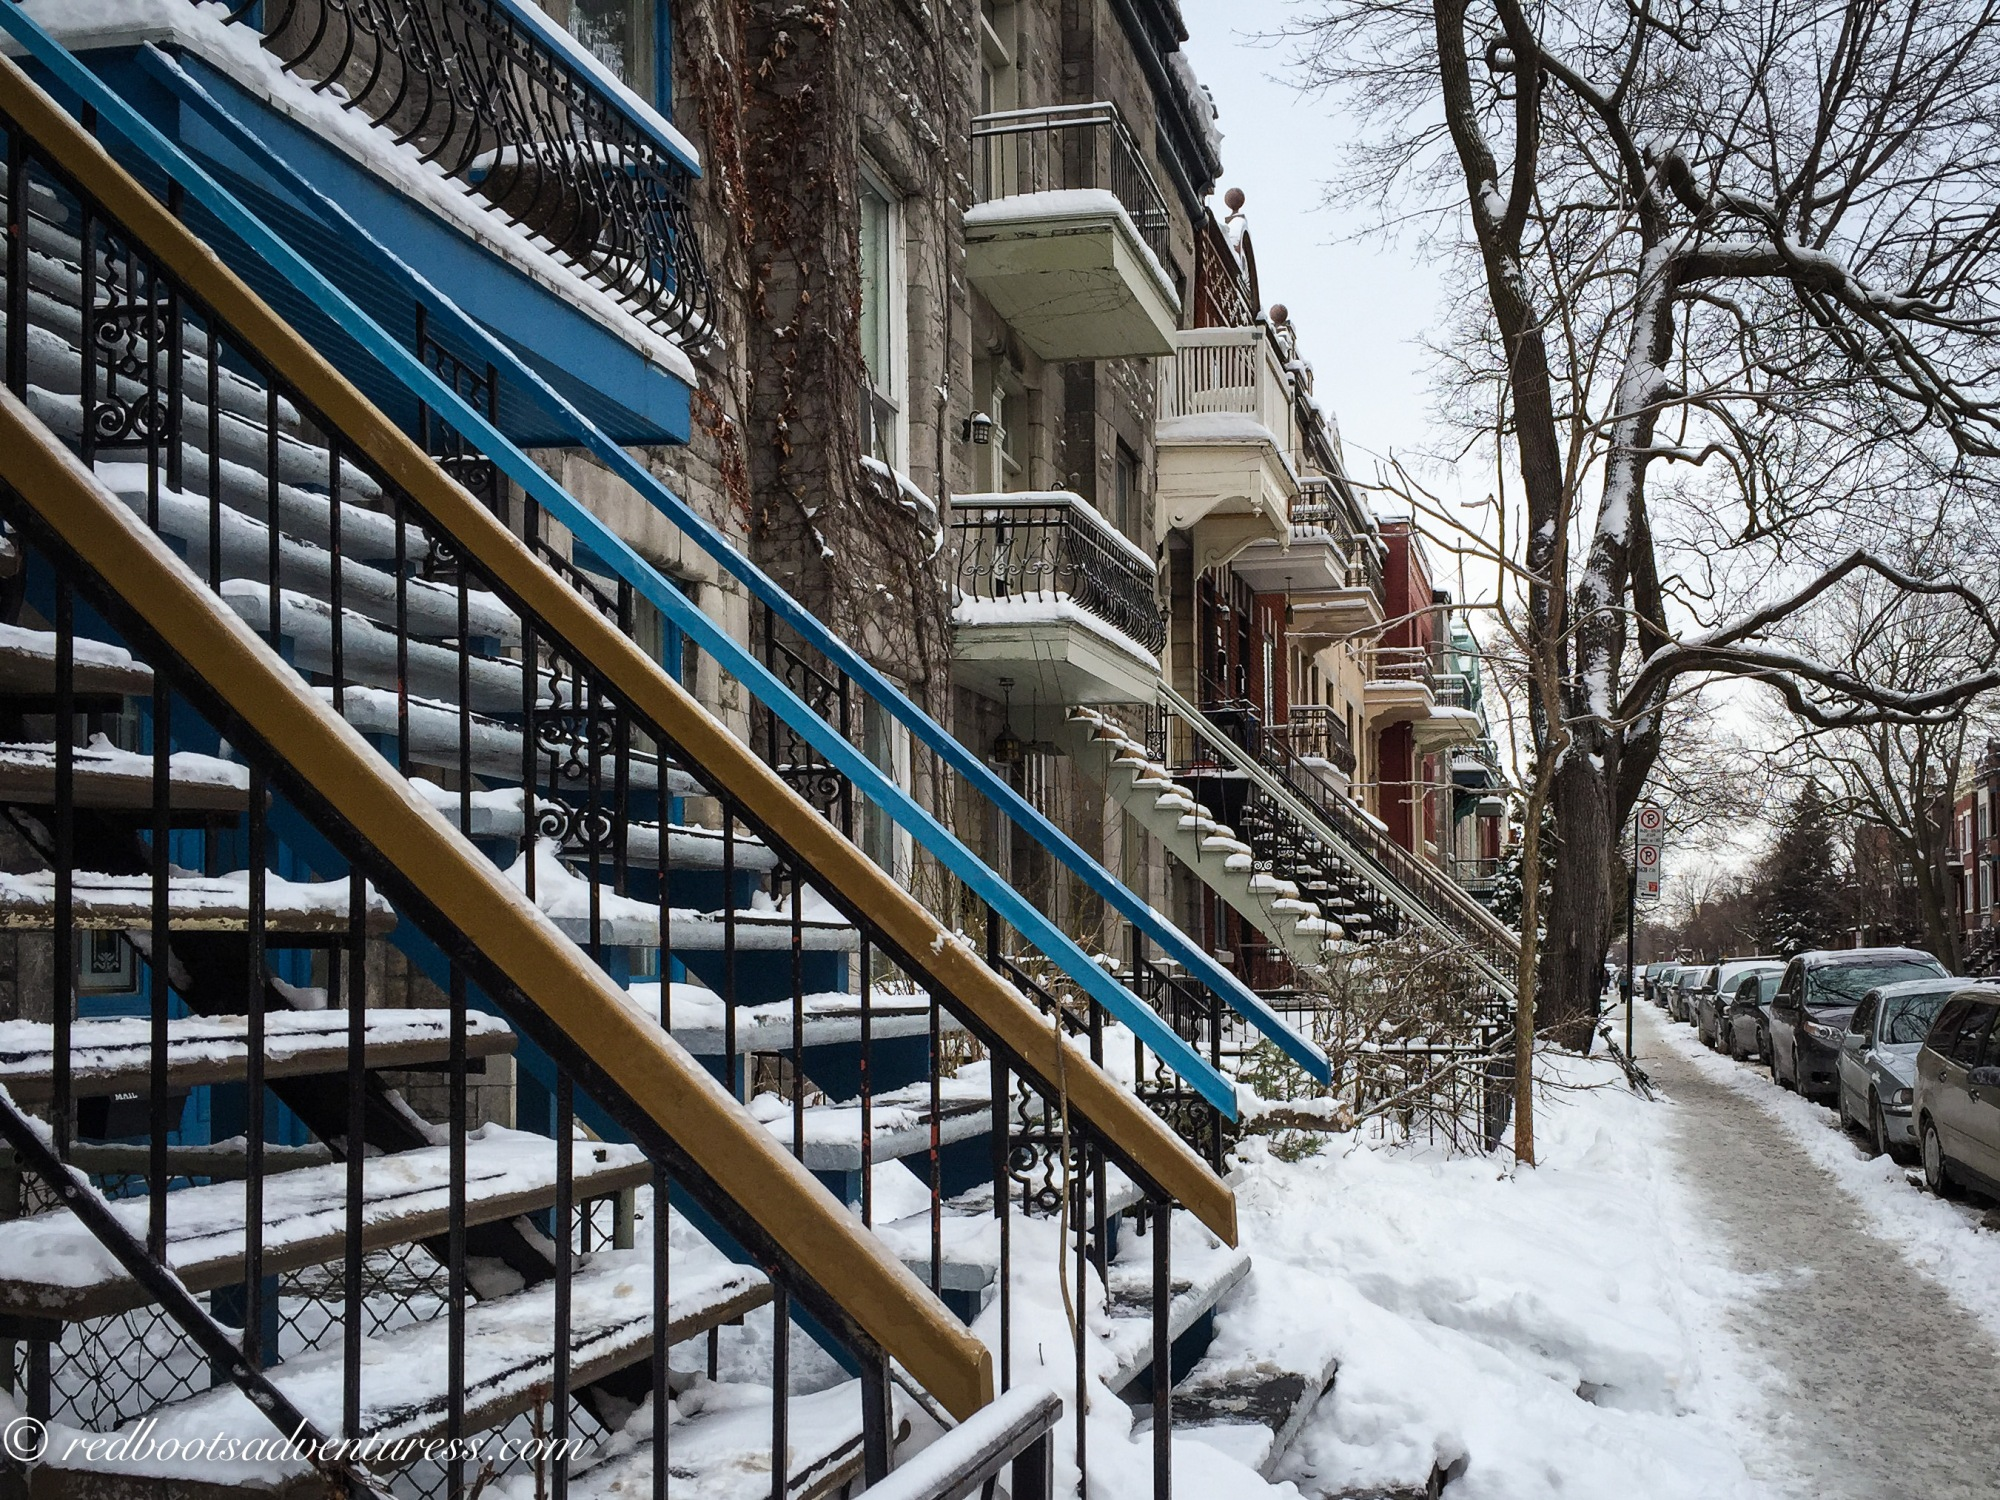 Stairs along a snowy sidewalk in Outremont